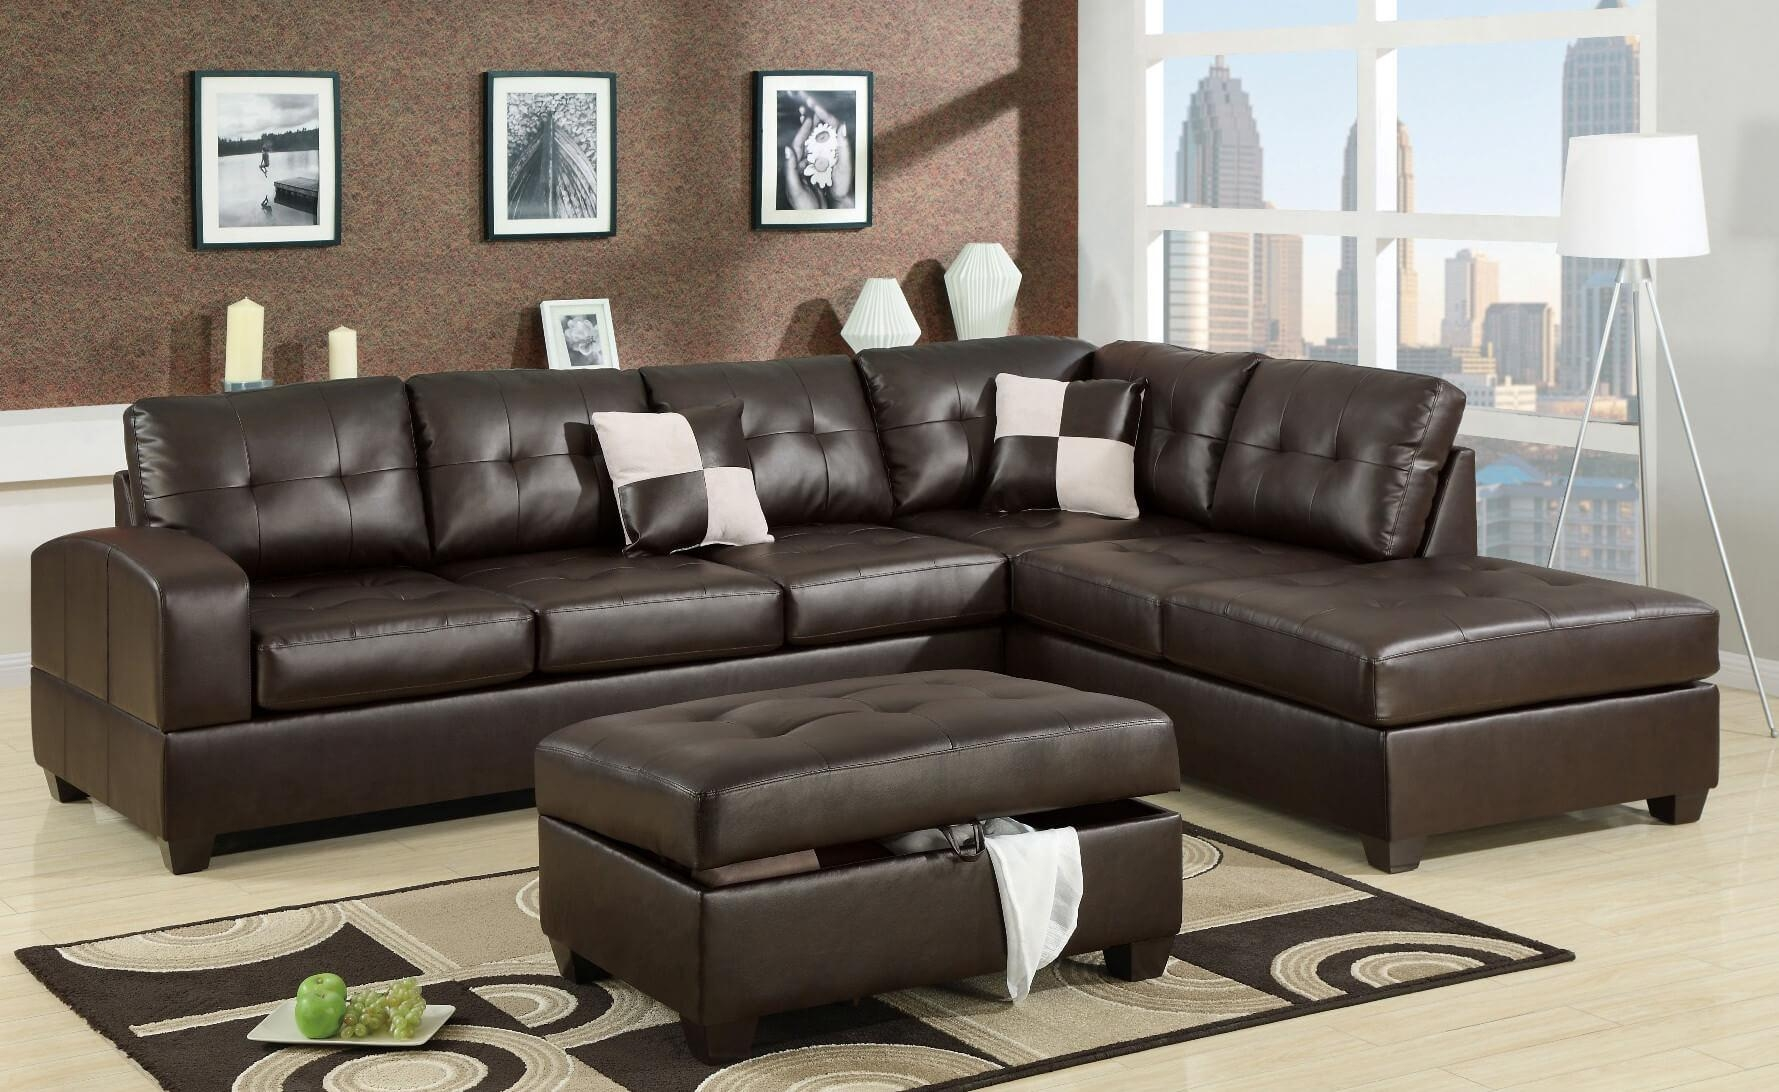 Epic Eco Friendly Sectional Sofa 43 On Stendmar Sectional Sofa With Regard To Eco Friendly Sectional : stendmar sectional sofa - Sectionals, Sofas & Couches